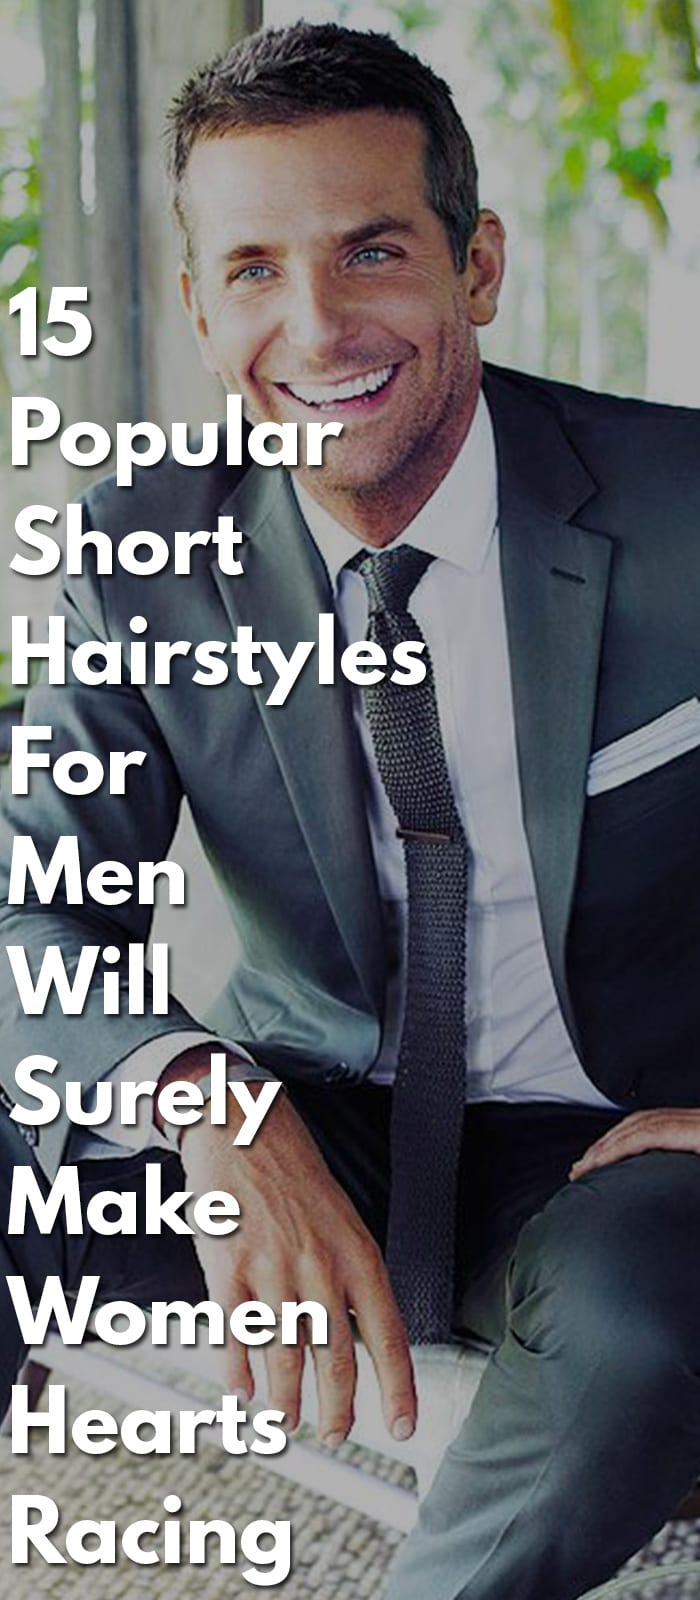 15-Popular-Short-Hairstyles-For-Men-Will-Surely-Make-Women-Hearts-Racing..